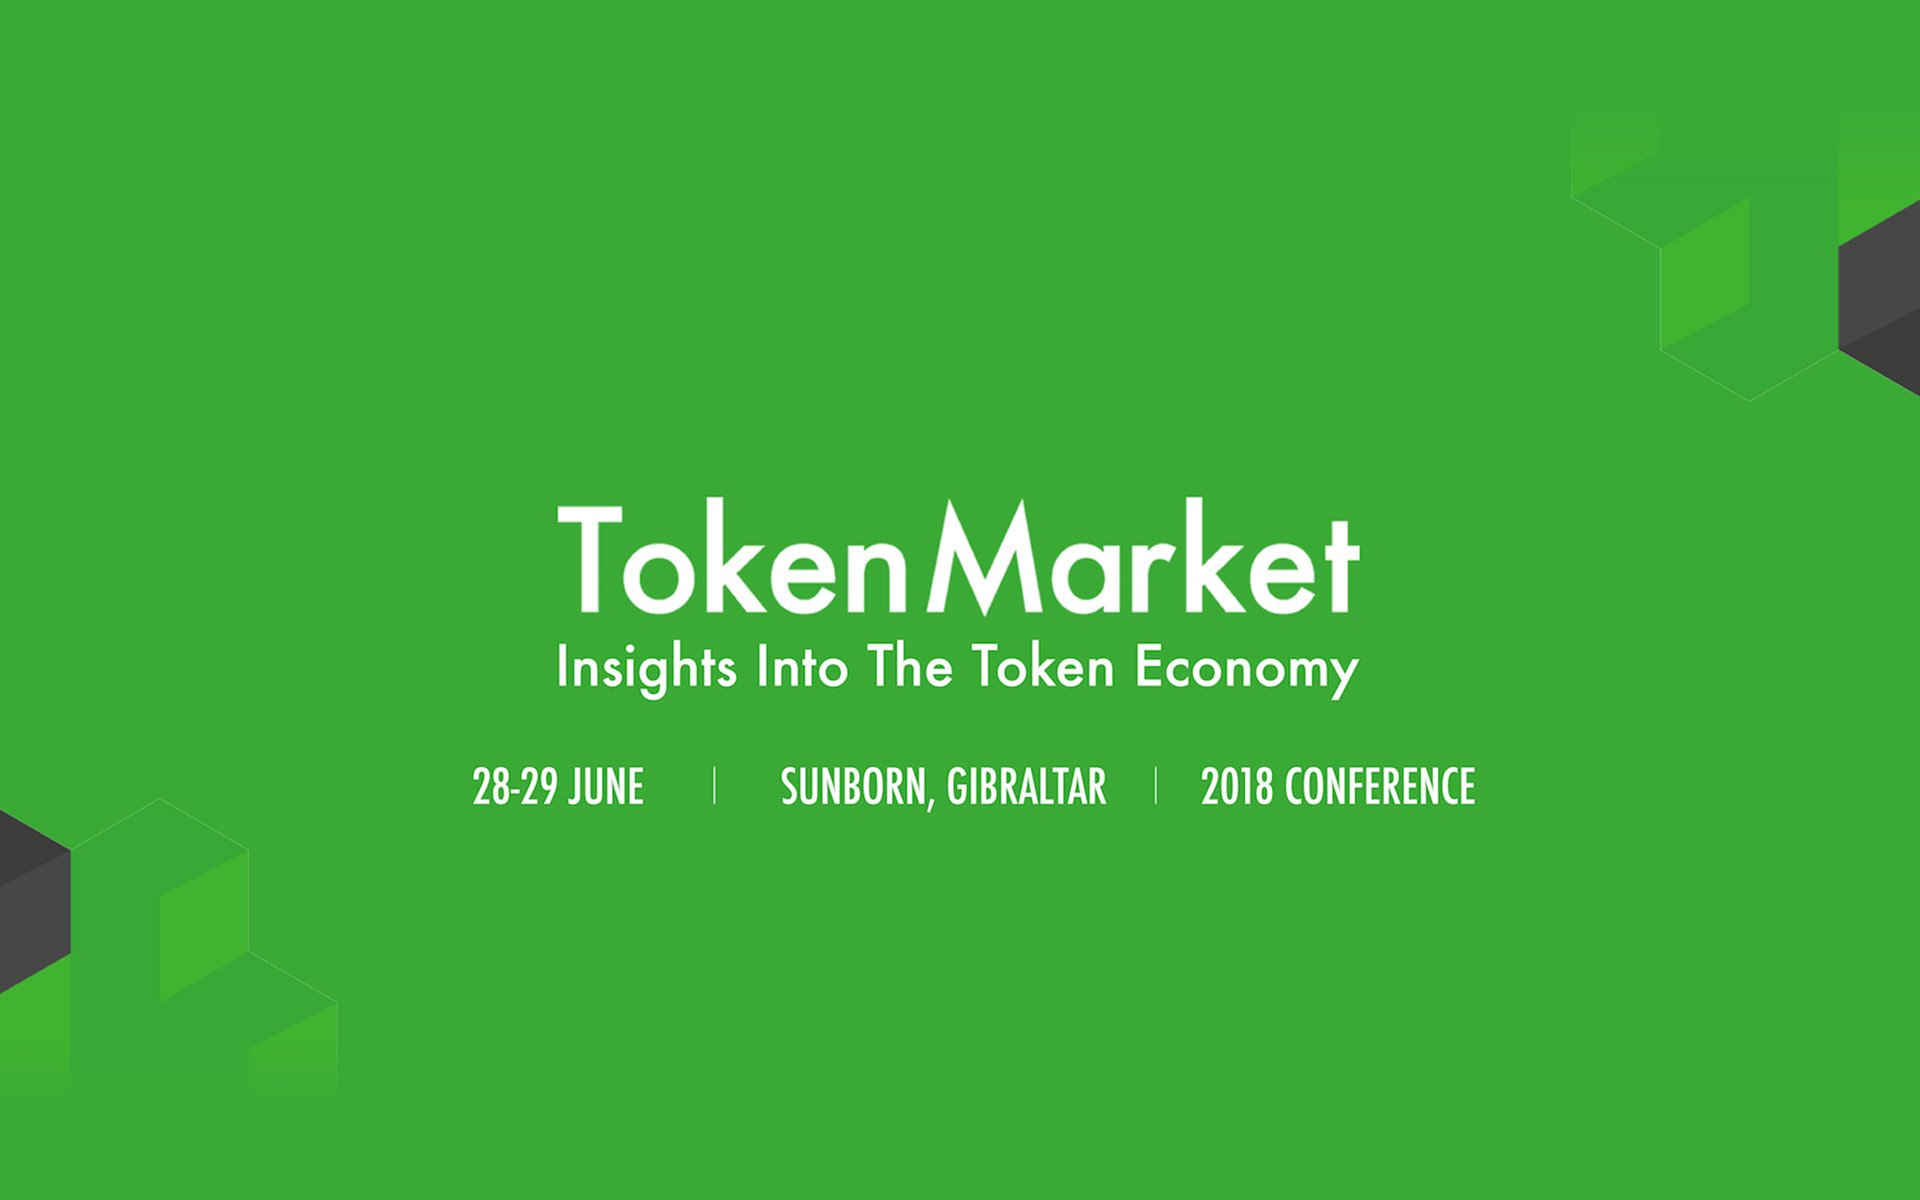 TokenMarket Announces Inaugural Token Economy Conference in Gibraltar